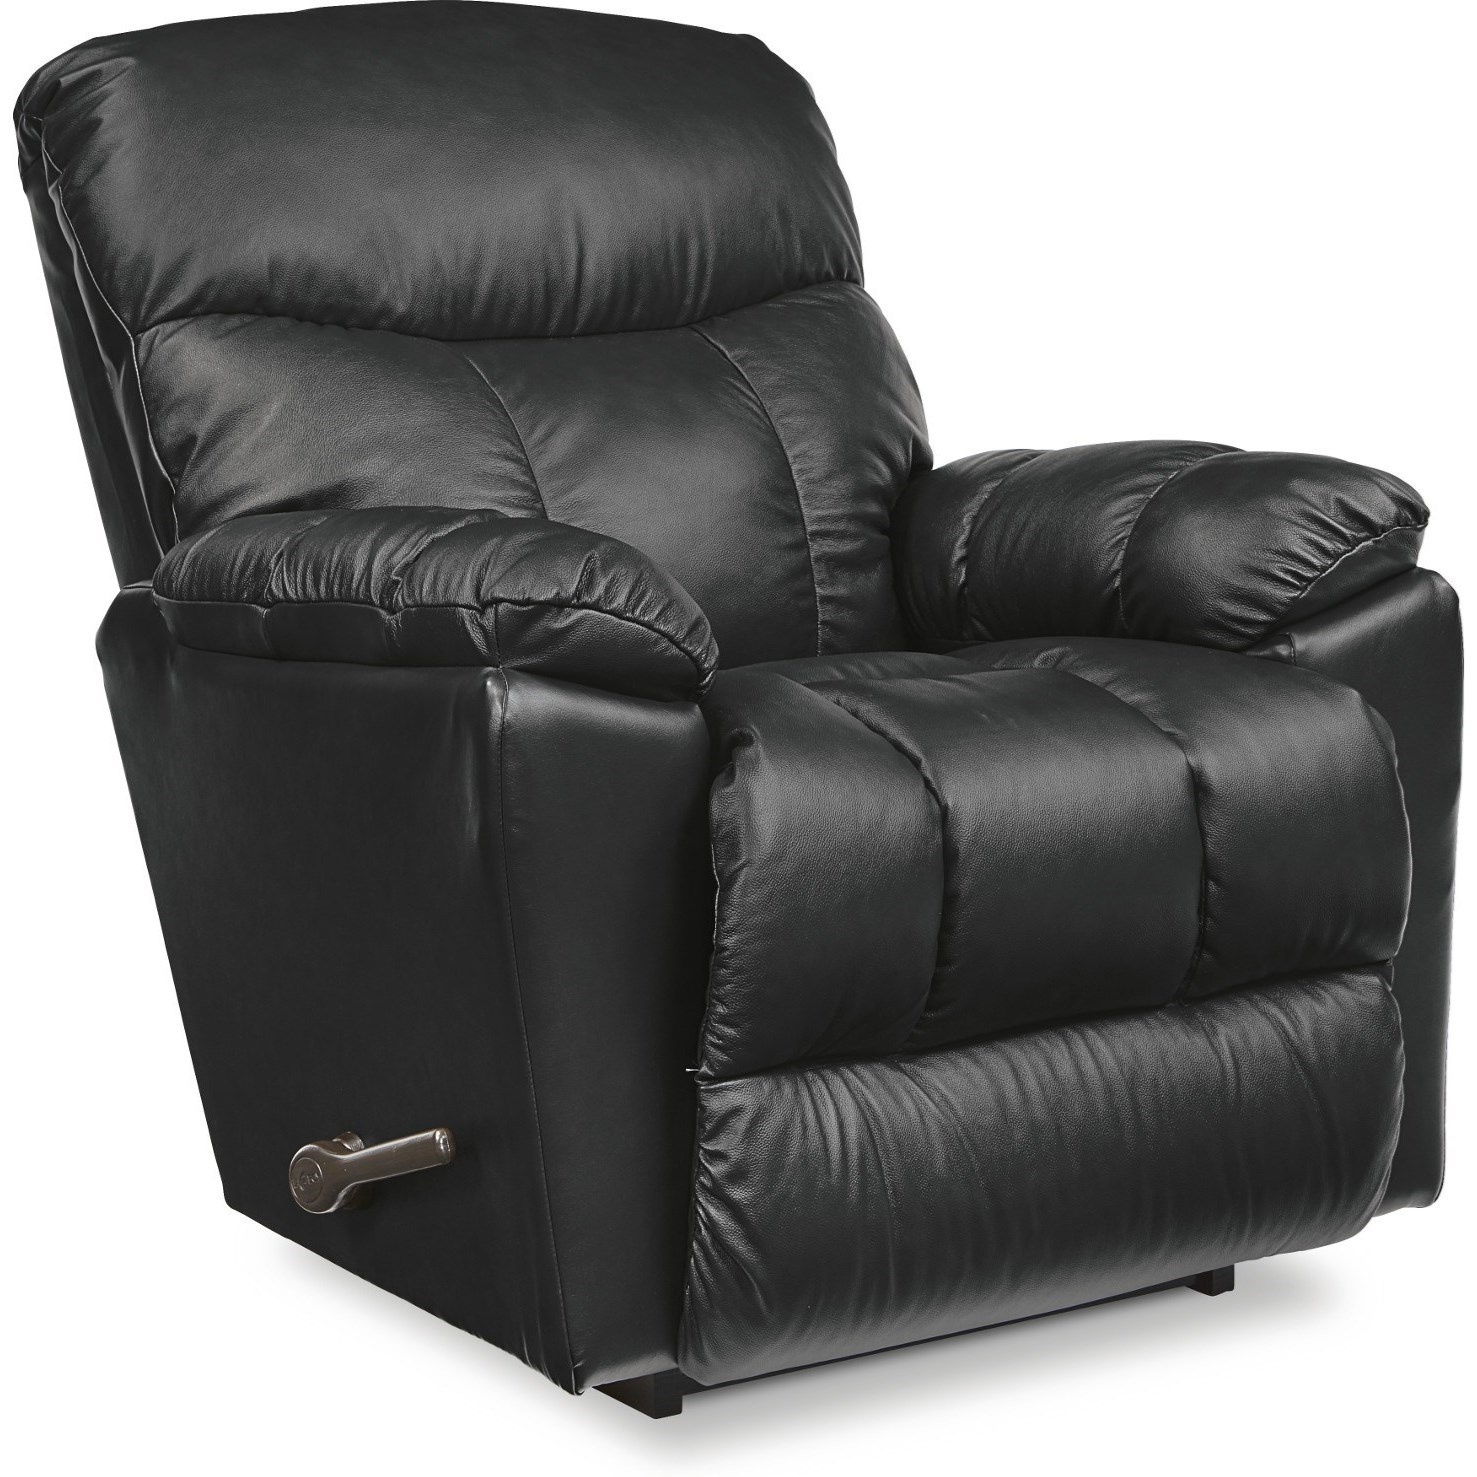 Morrison Wall Recliner by La-Z-Boy at Bennett's Furniture and Mattresses